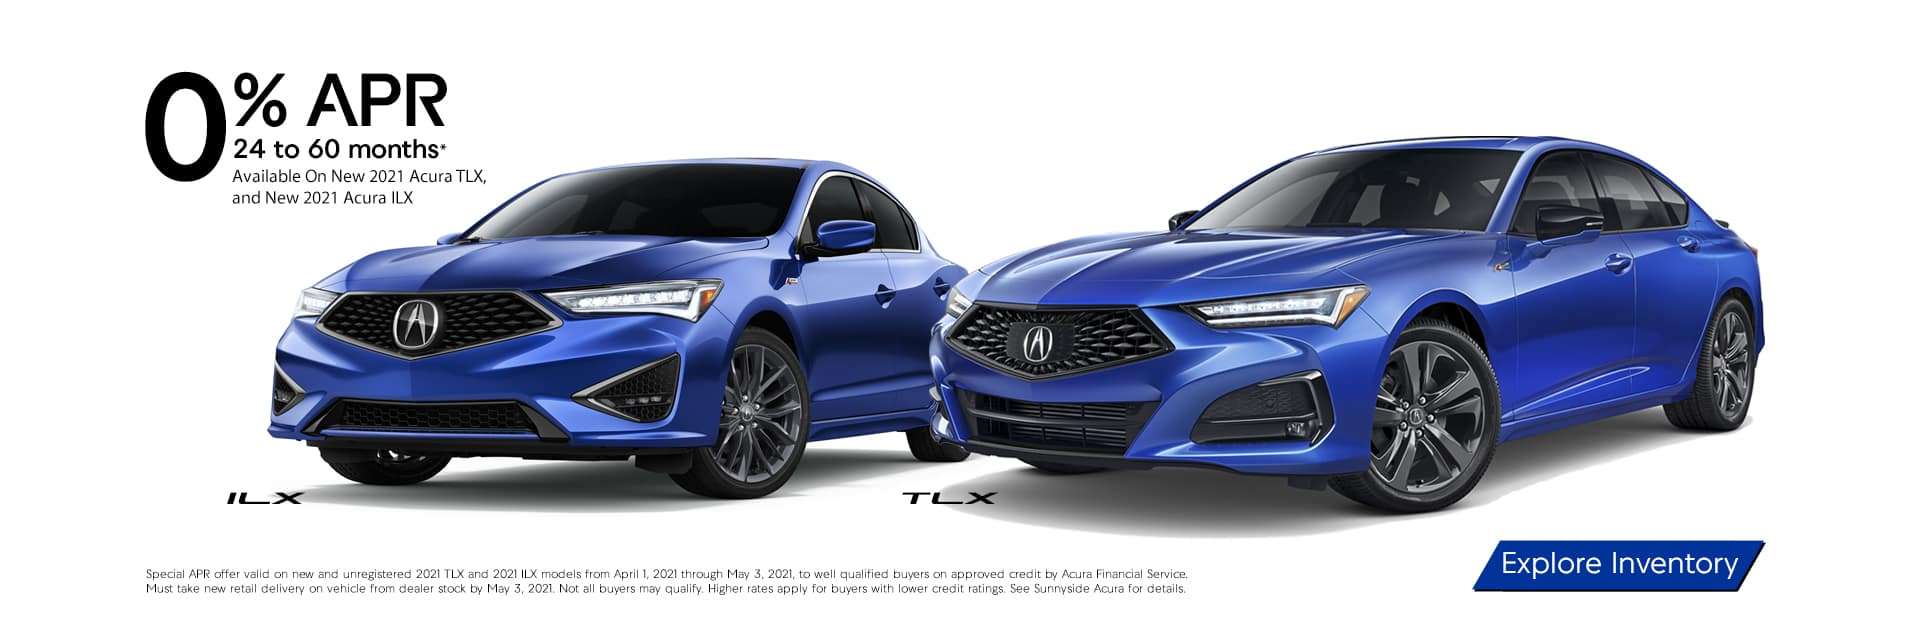 Zero percent APR available 24 to 60 months on New Acura TLX, ILX Sunnyside Acura Nashua NH 03063